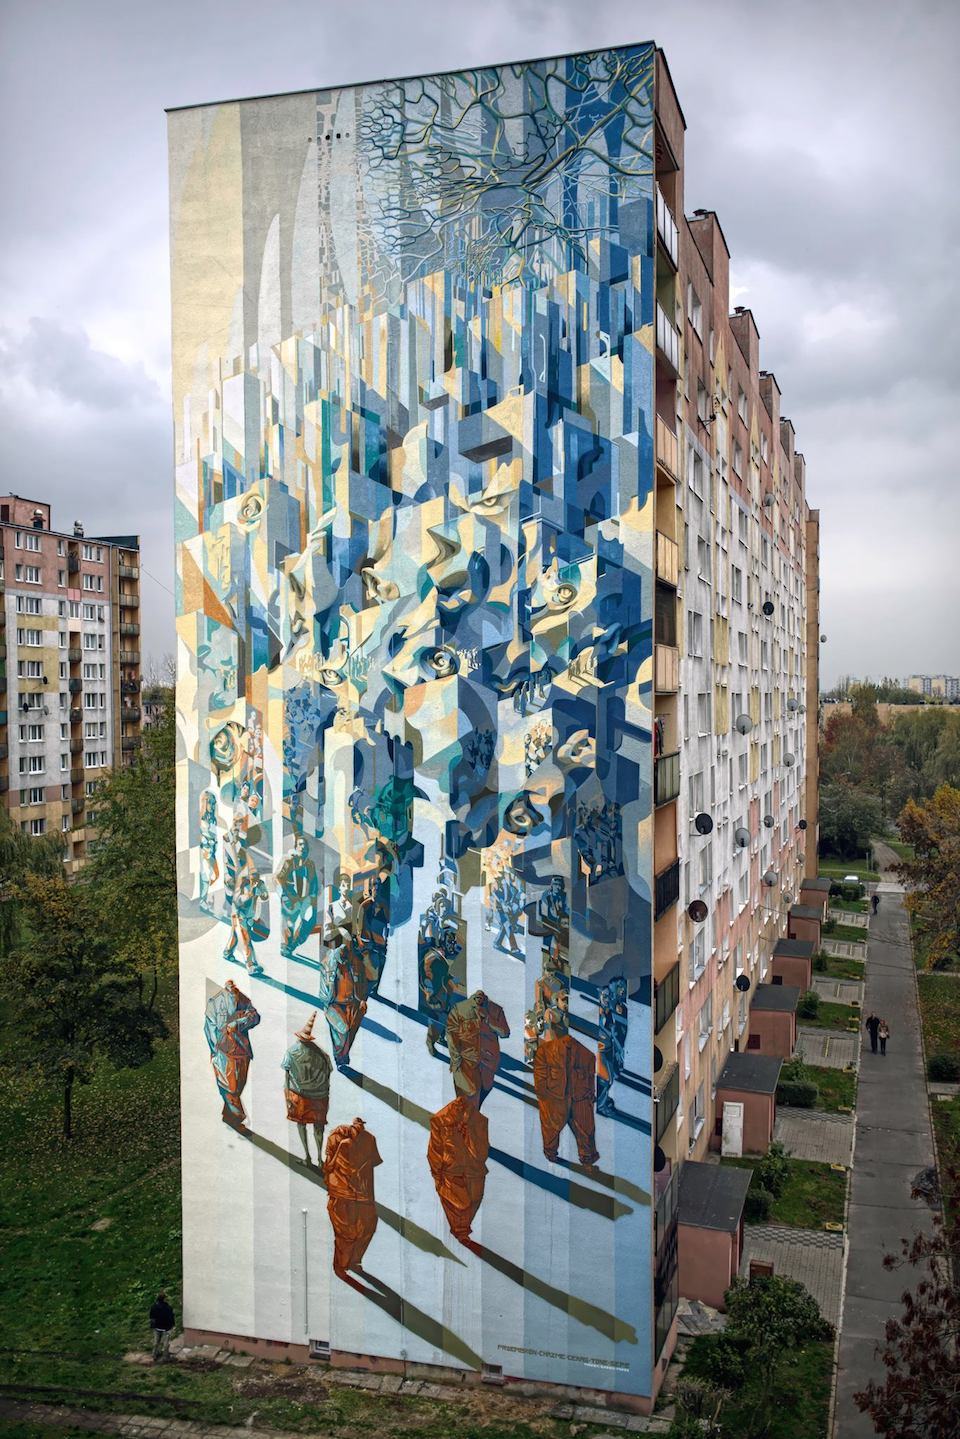 By Proembrion, Tone, Sepe, Chazme, Cekas - at GALERIA URBAN FORMS in Lodz, Poland 16